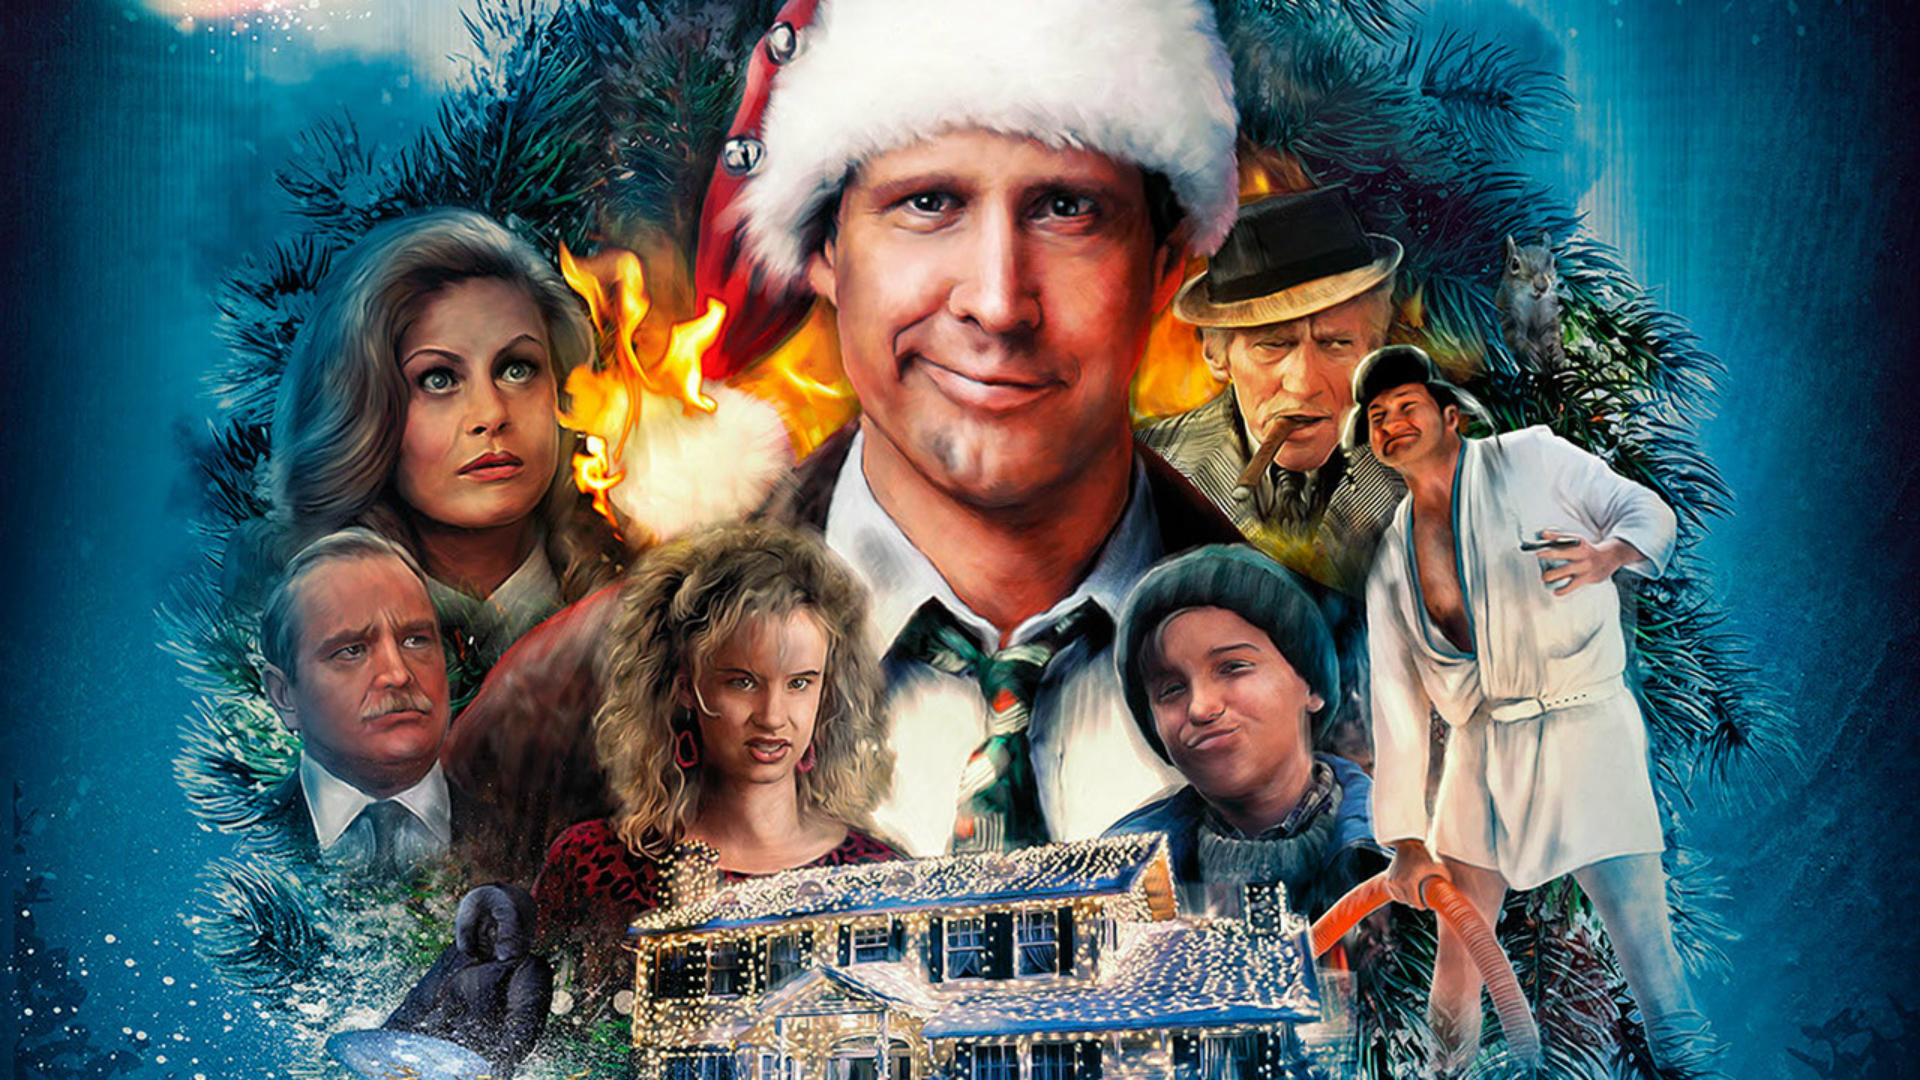 National Lampoon S Christmas Vacation Hd Wallpaper Background Image 1920x1080 Id 808062